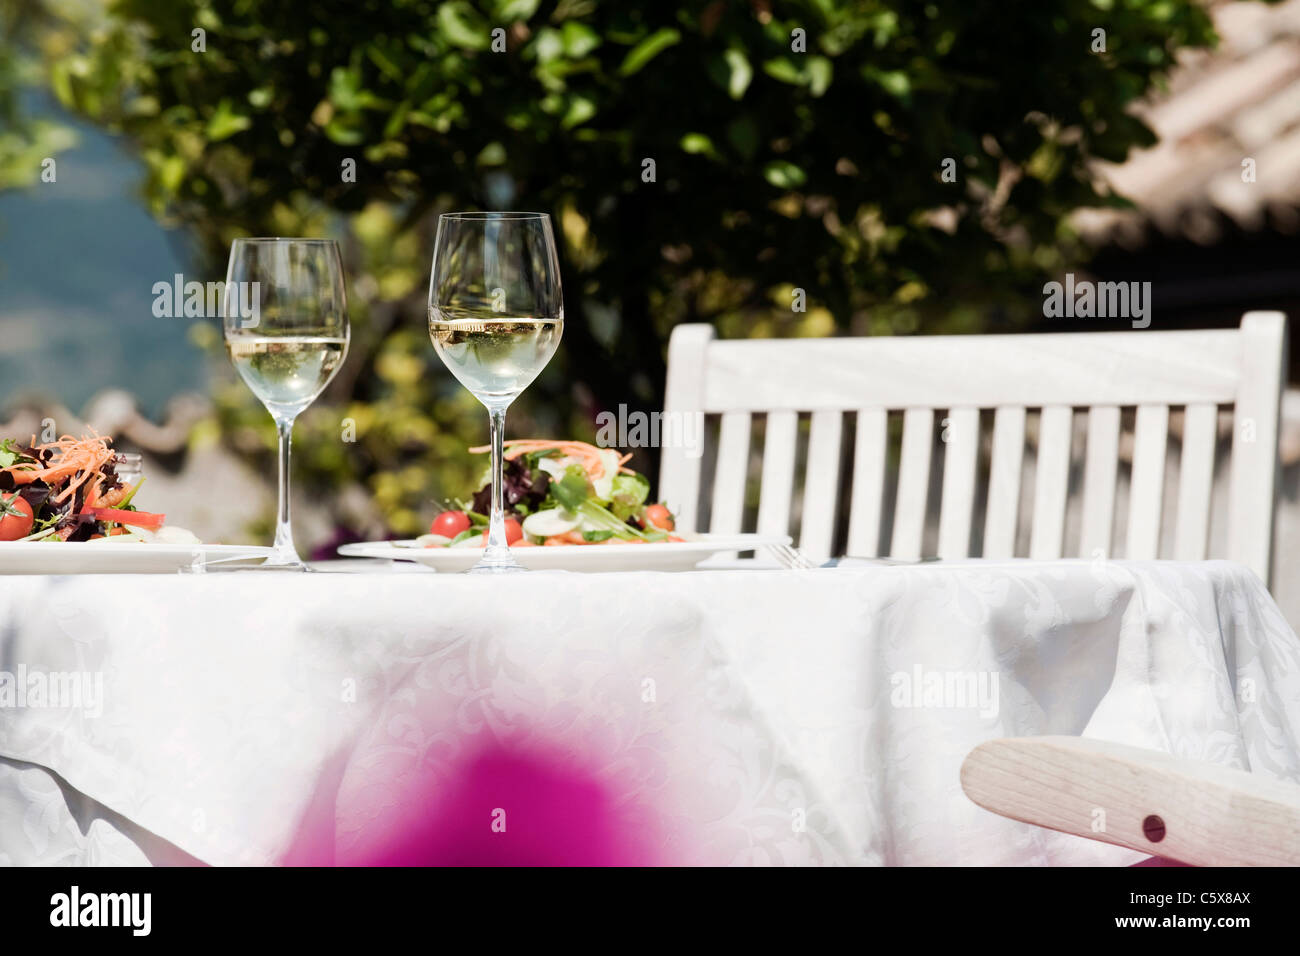 Italy, South Tyrol, Laid table, with mixed salad on plates and two glasses with white wine - Stock Image